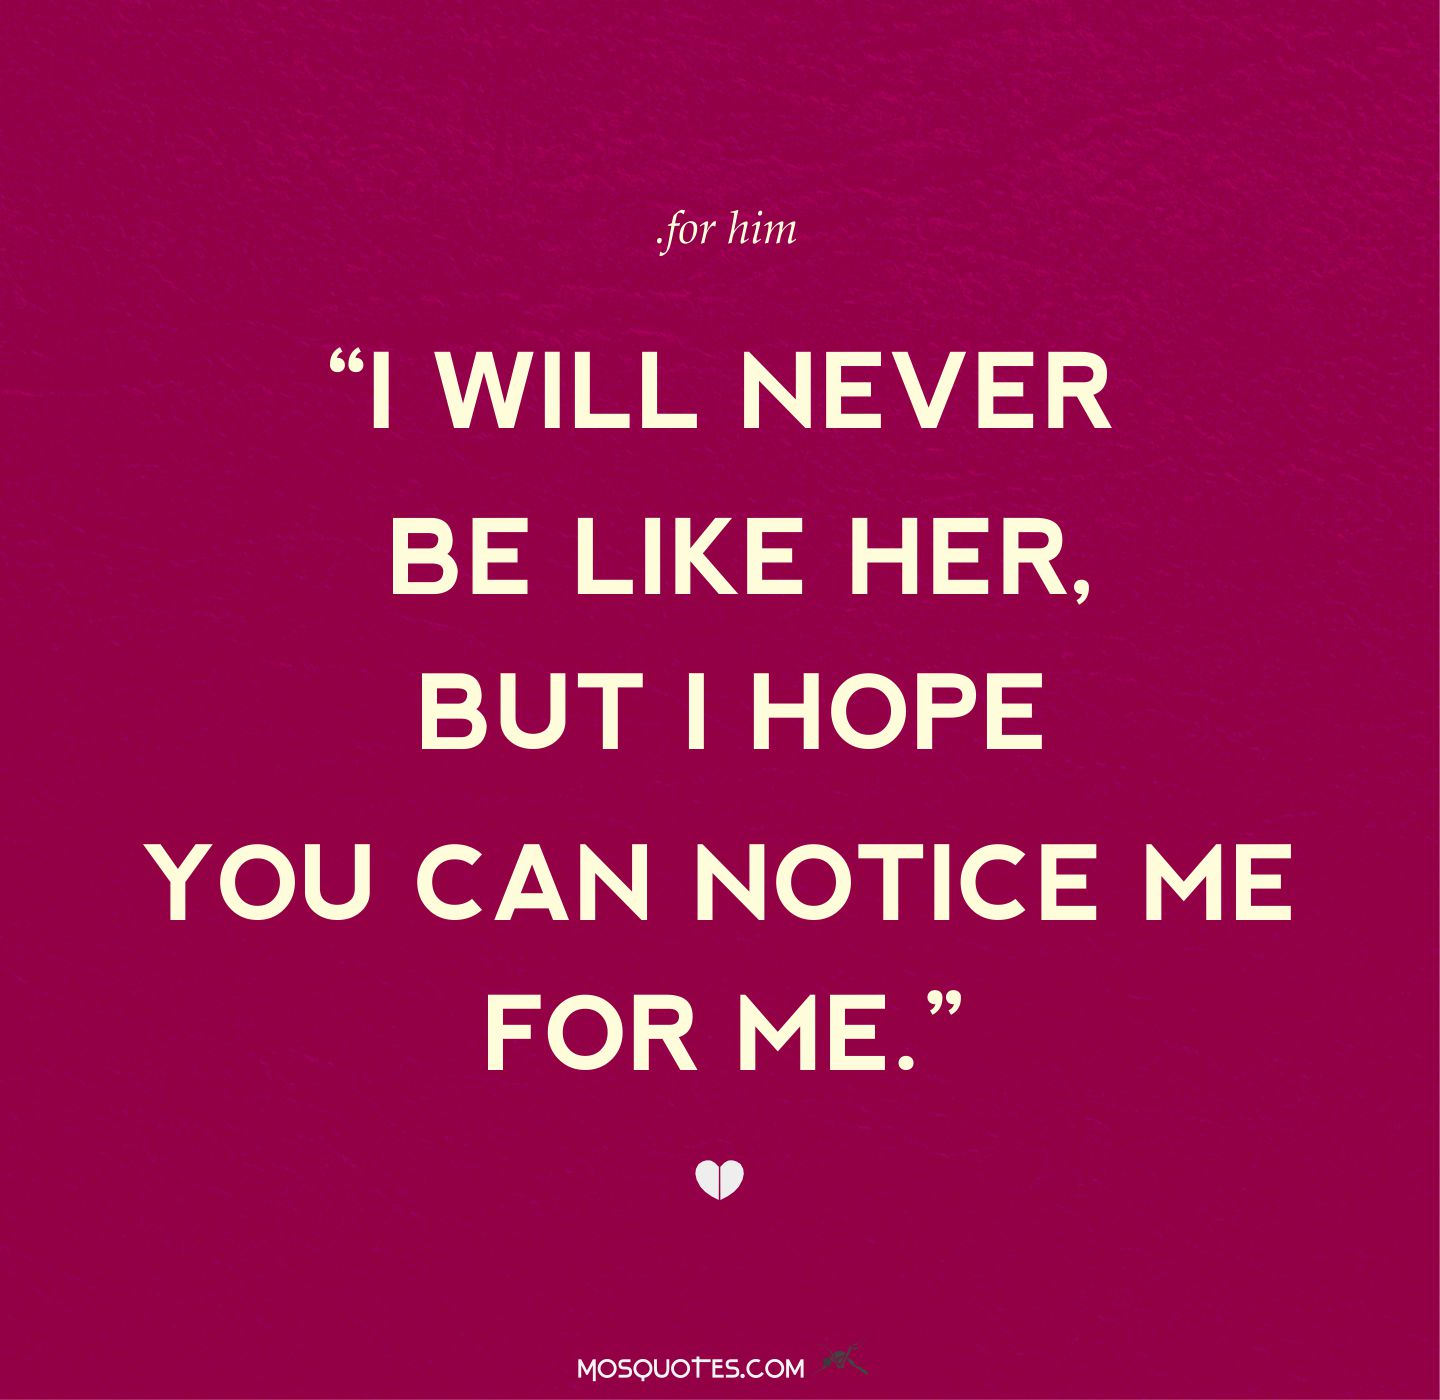 I Like It And Him: I Like Her Quotes. QuotesGram